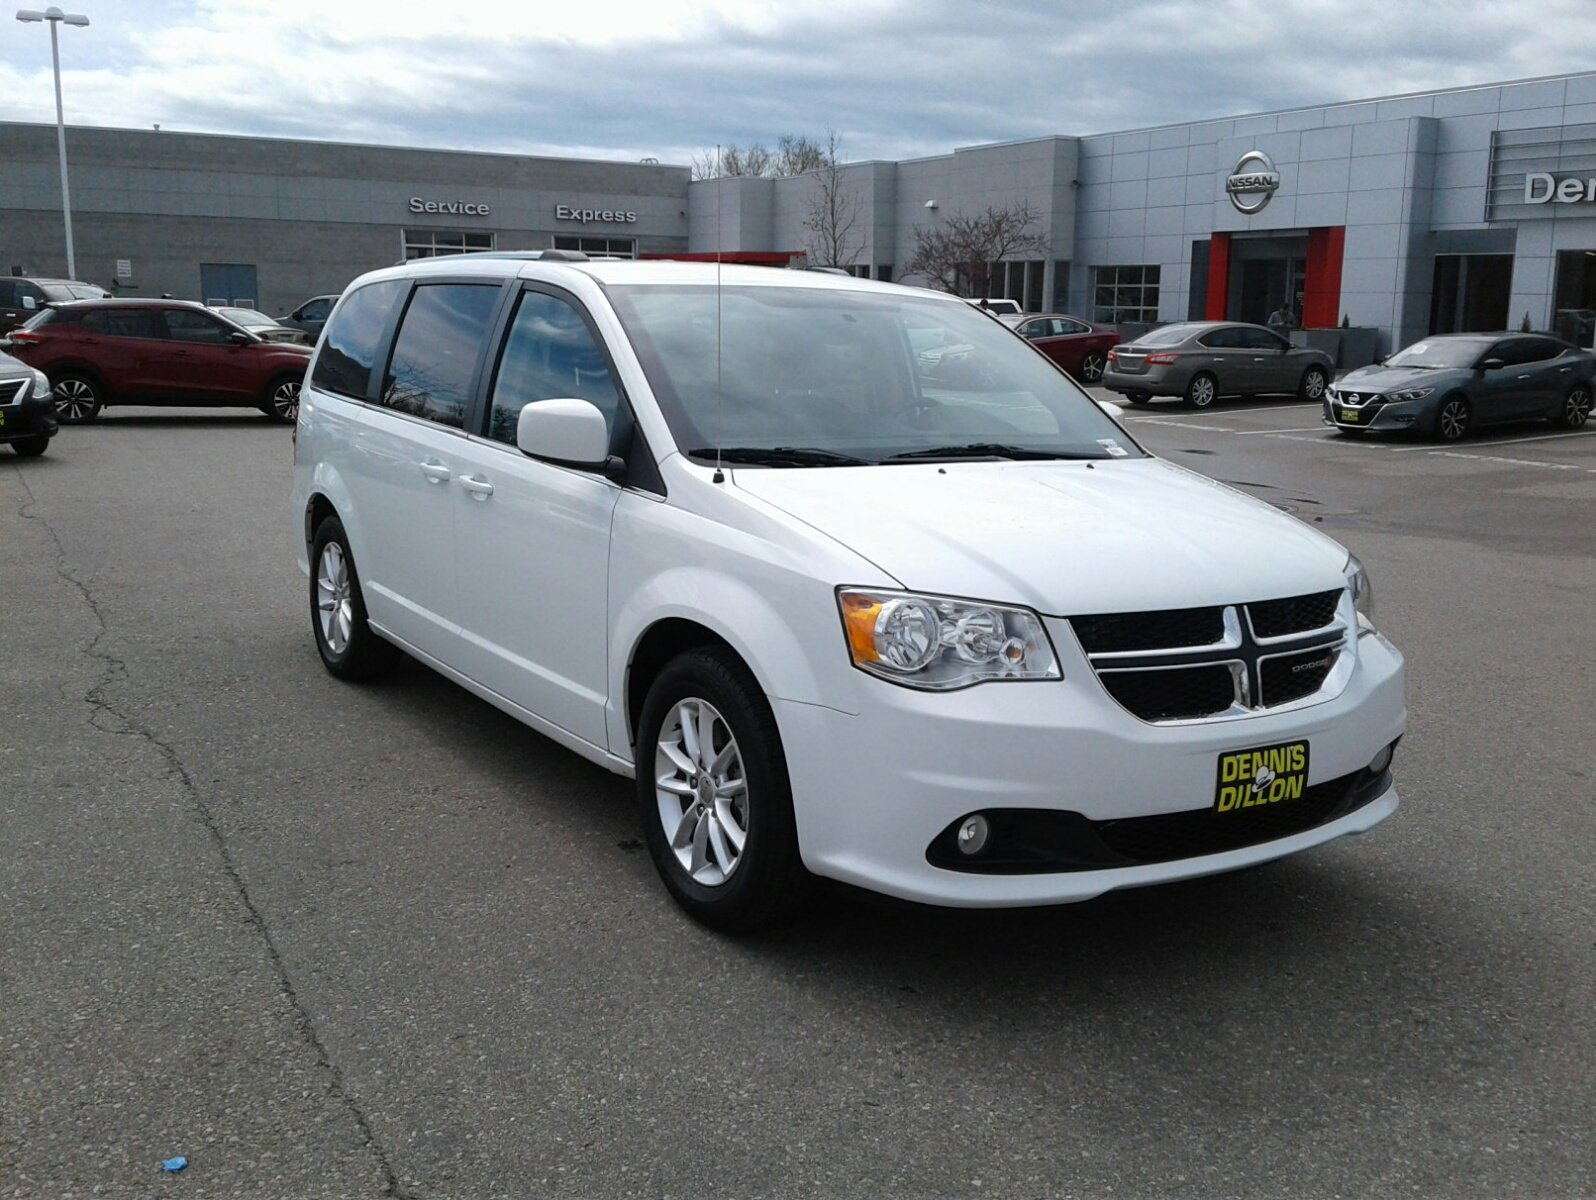 Dennis Dillon Dodge >> Pre Owned 2018 Dodge Grand Caravan Sxt Mini Van Passenger In Boise